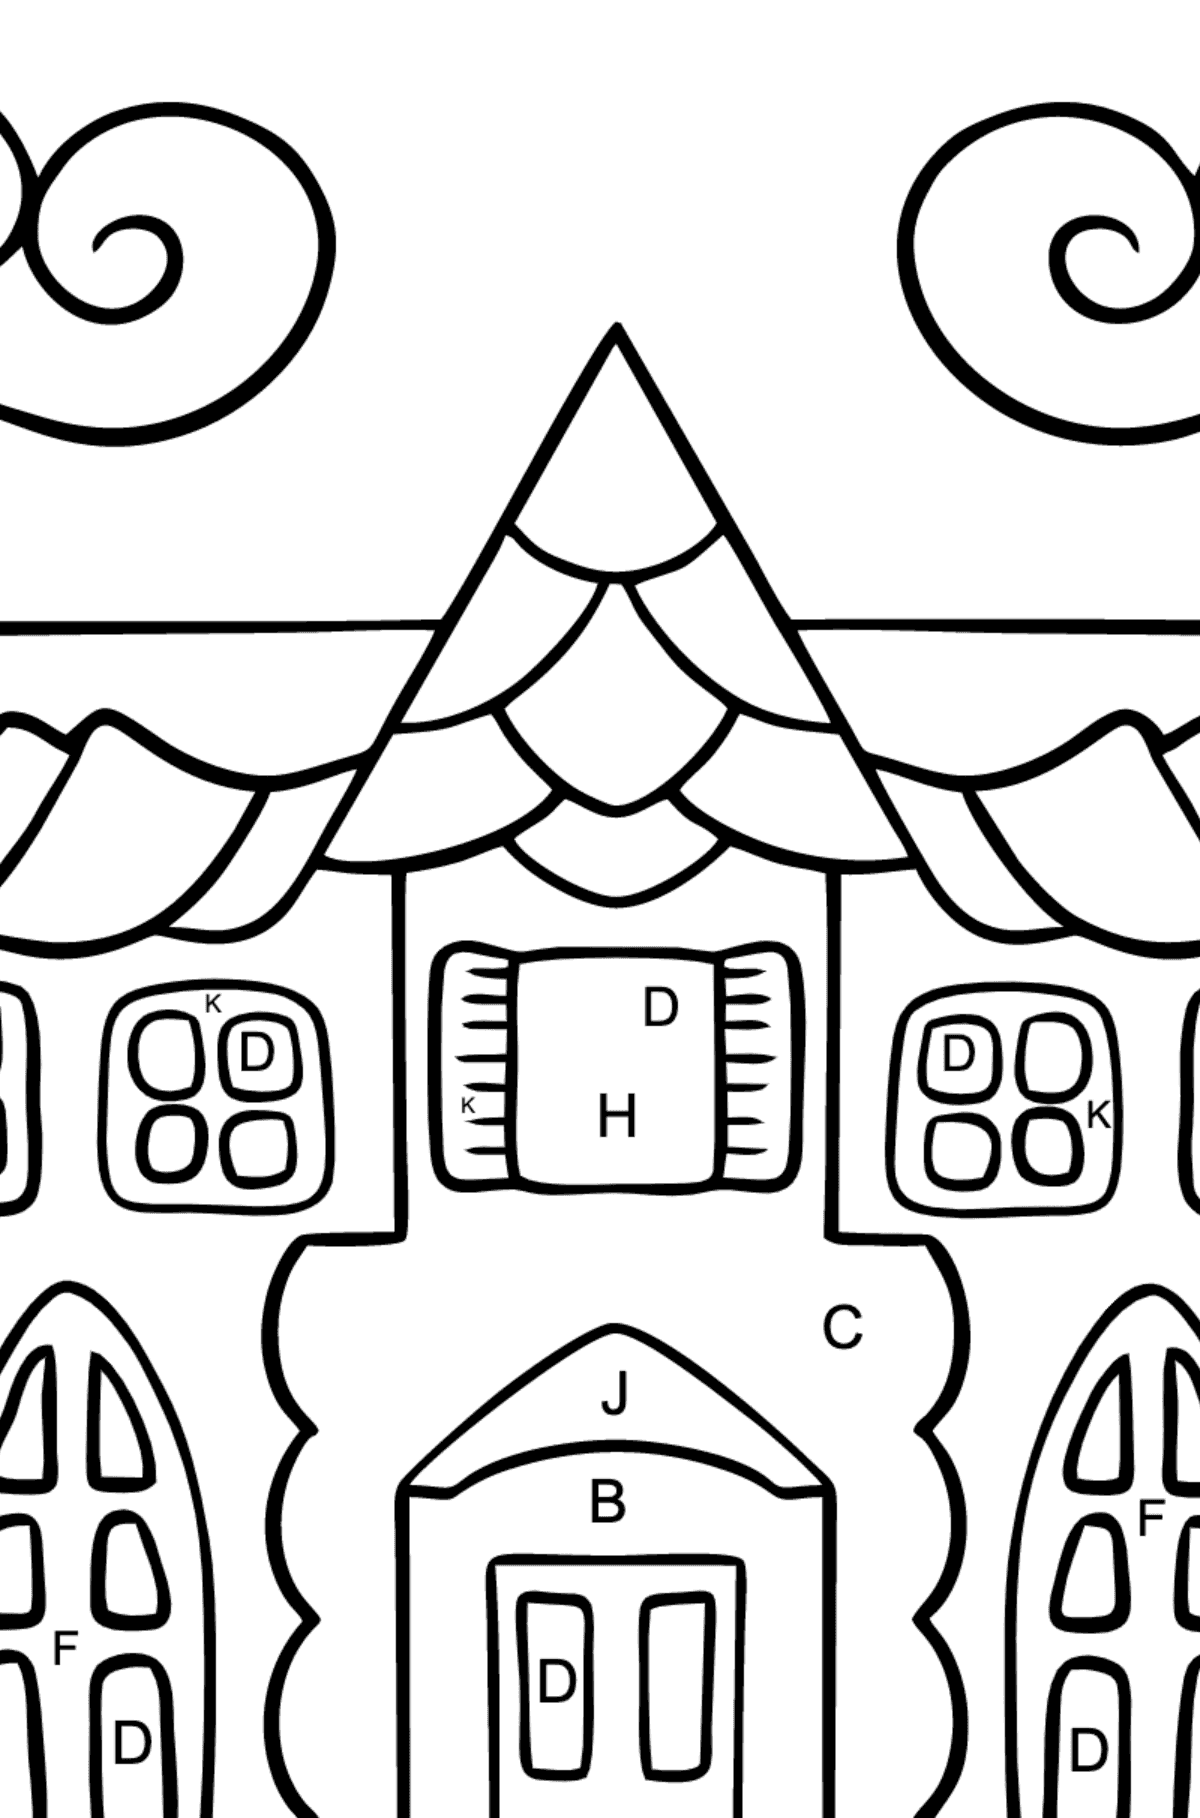 Coloring Page - A House in an Enchanted Kingdom for Children  - Color by Letters